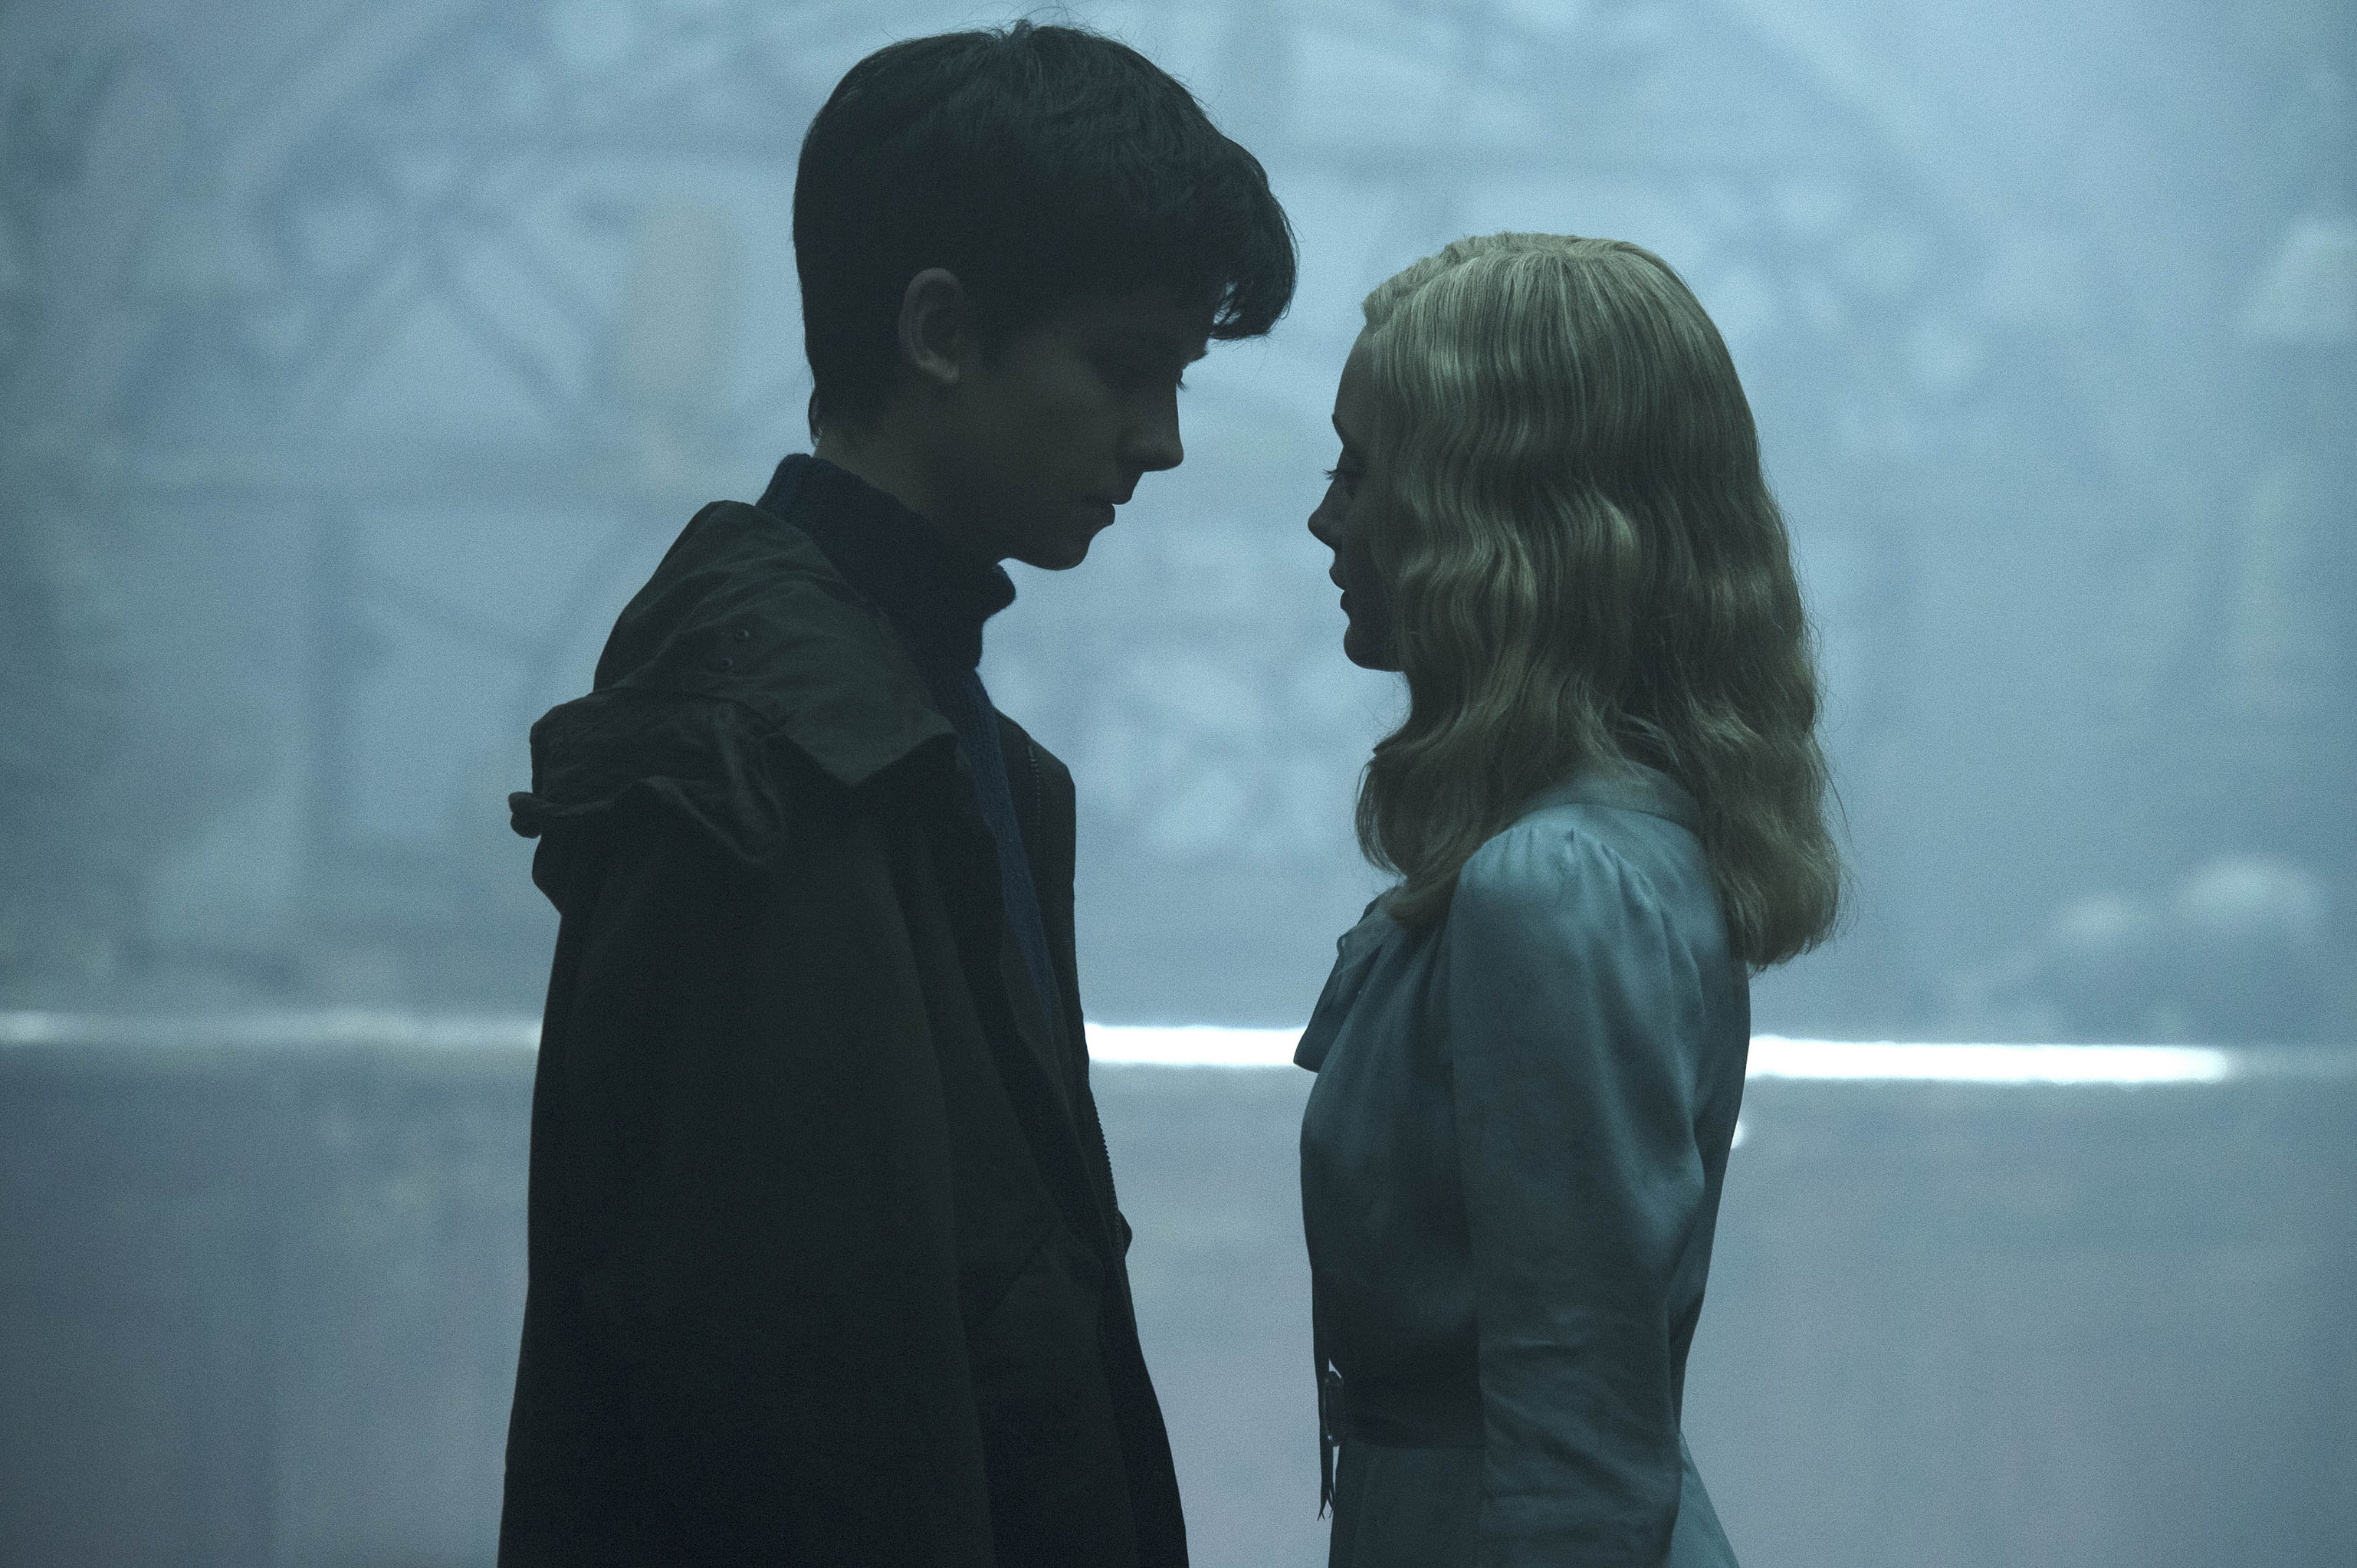 DF-05013 - Jake (Asa Butterfield) and Emma (Ella Purnell) grow close in the extraordinary world of MISS PEREGRINE'S HOME FOR PECULIAR CHILDREN. Photo Credit: Jay Maidment.